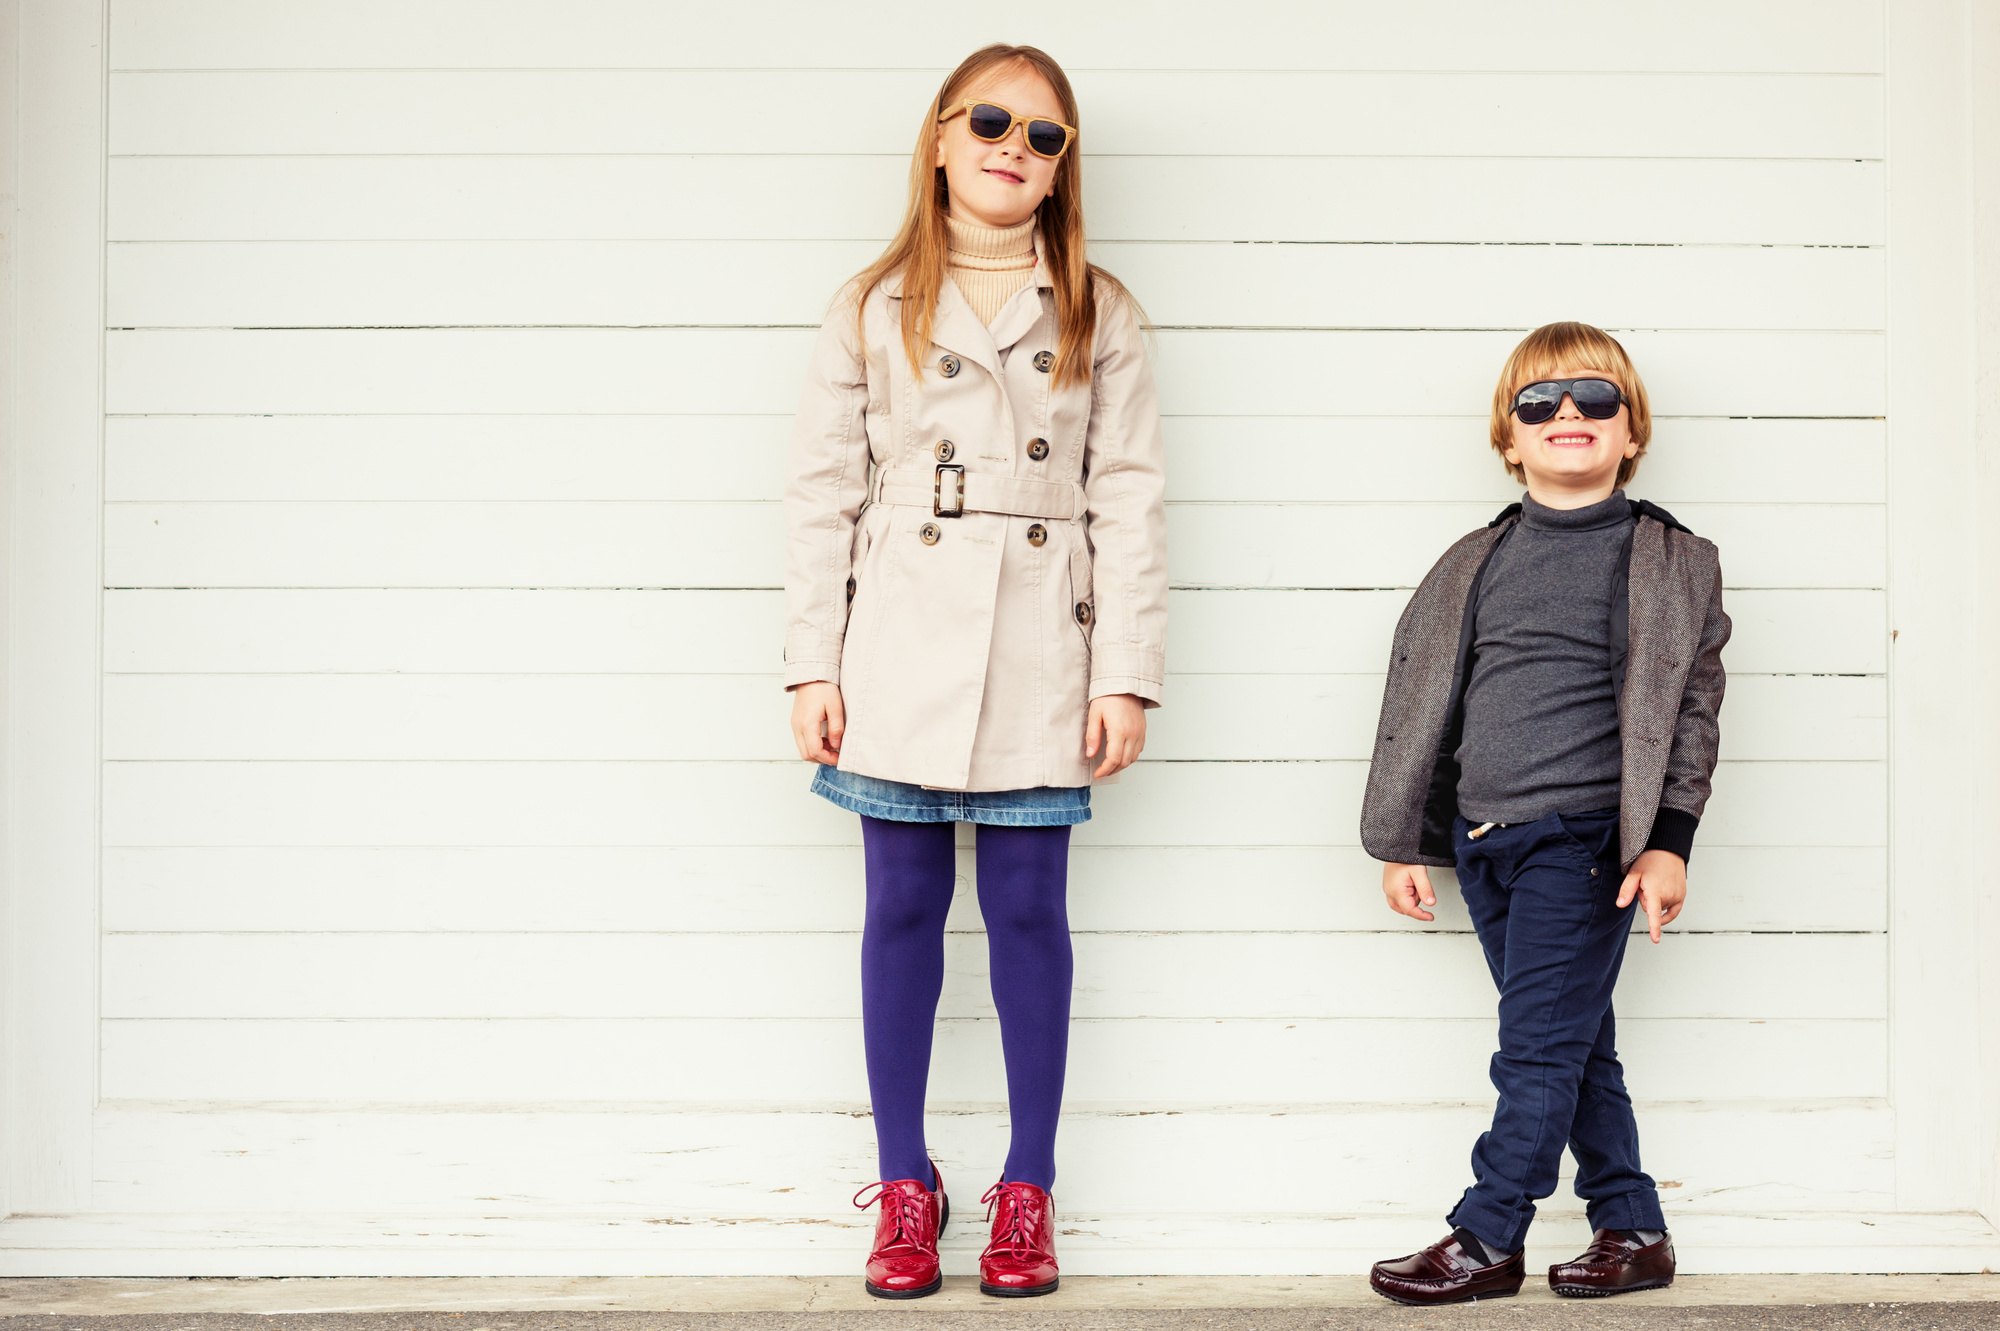 Clothes stylish for kids photo recommend to wear for on every day in 2019